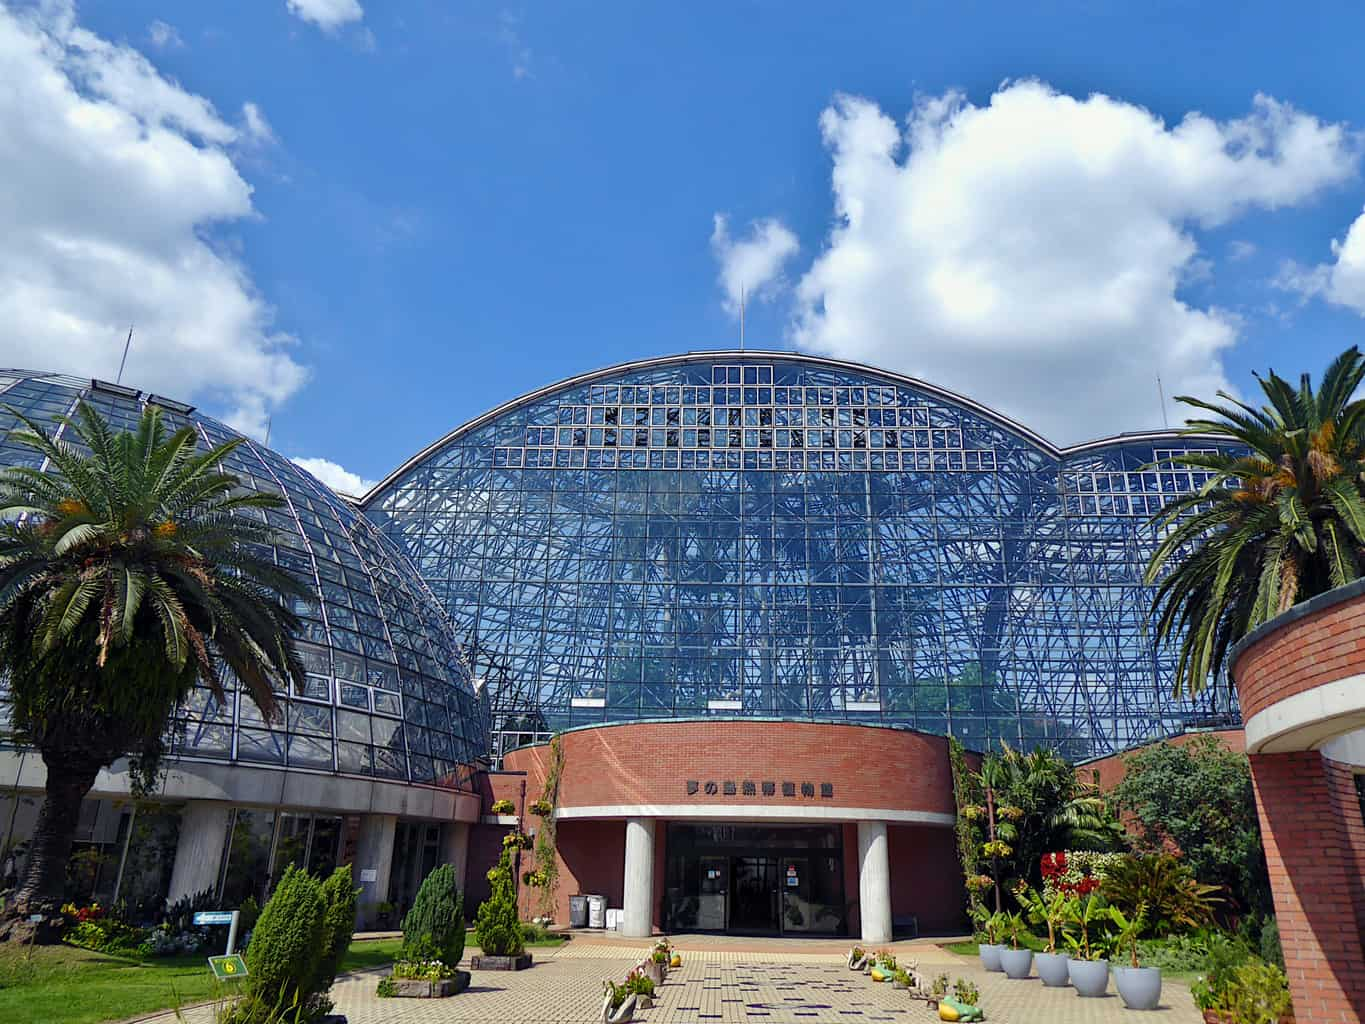 Tropical Greenhouse Domes Museum